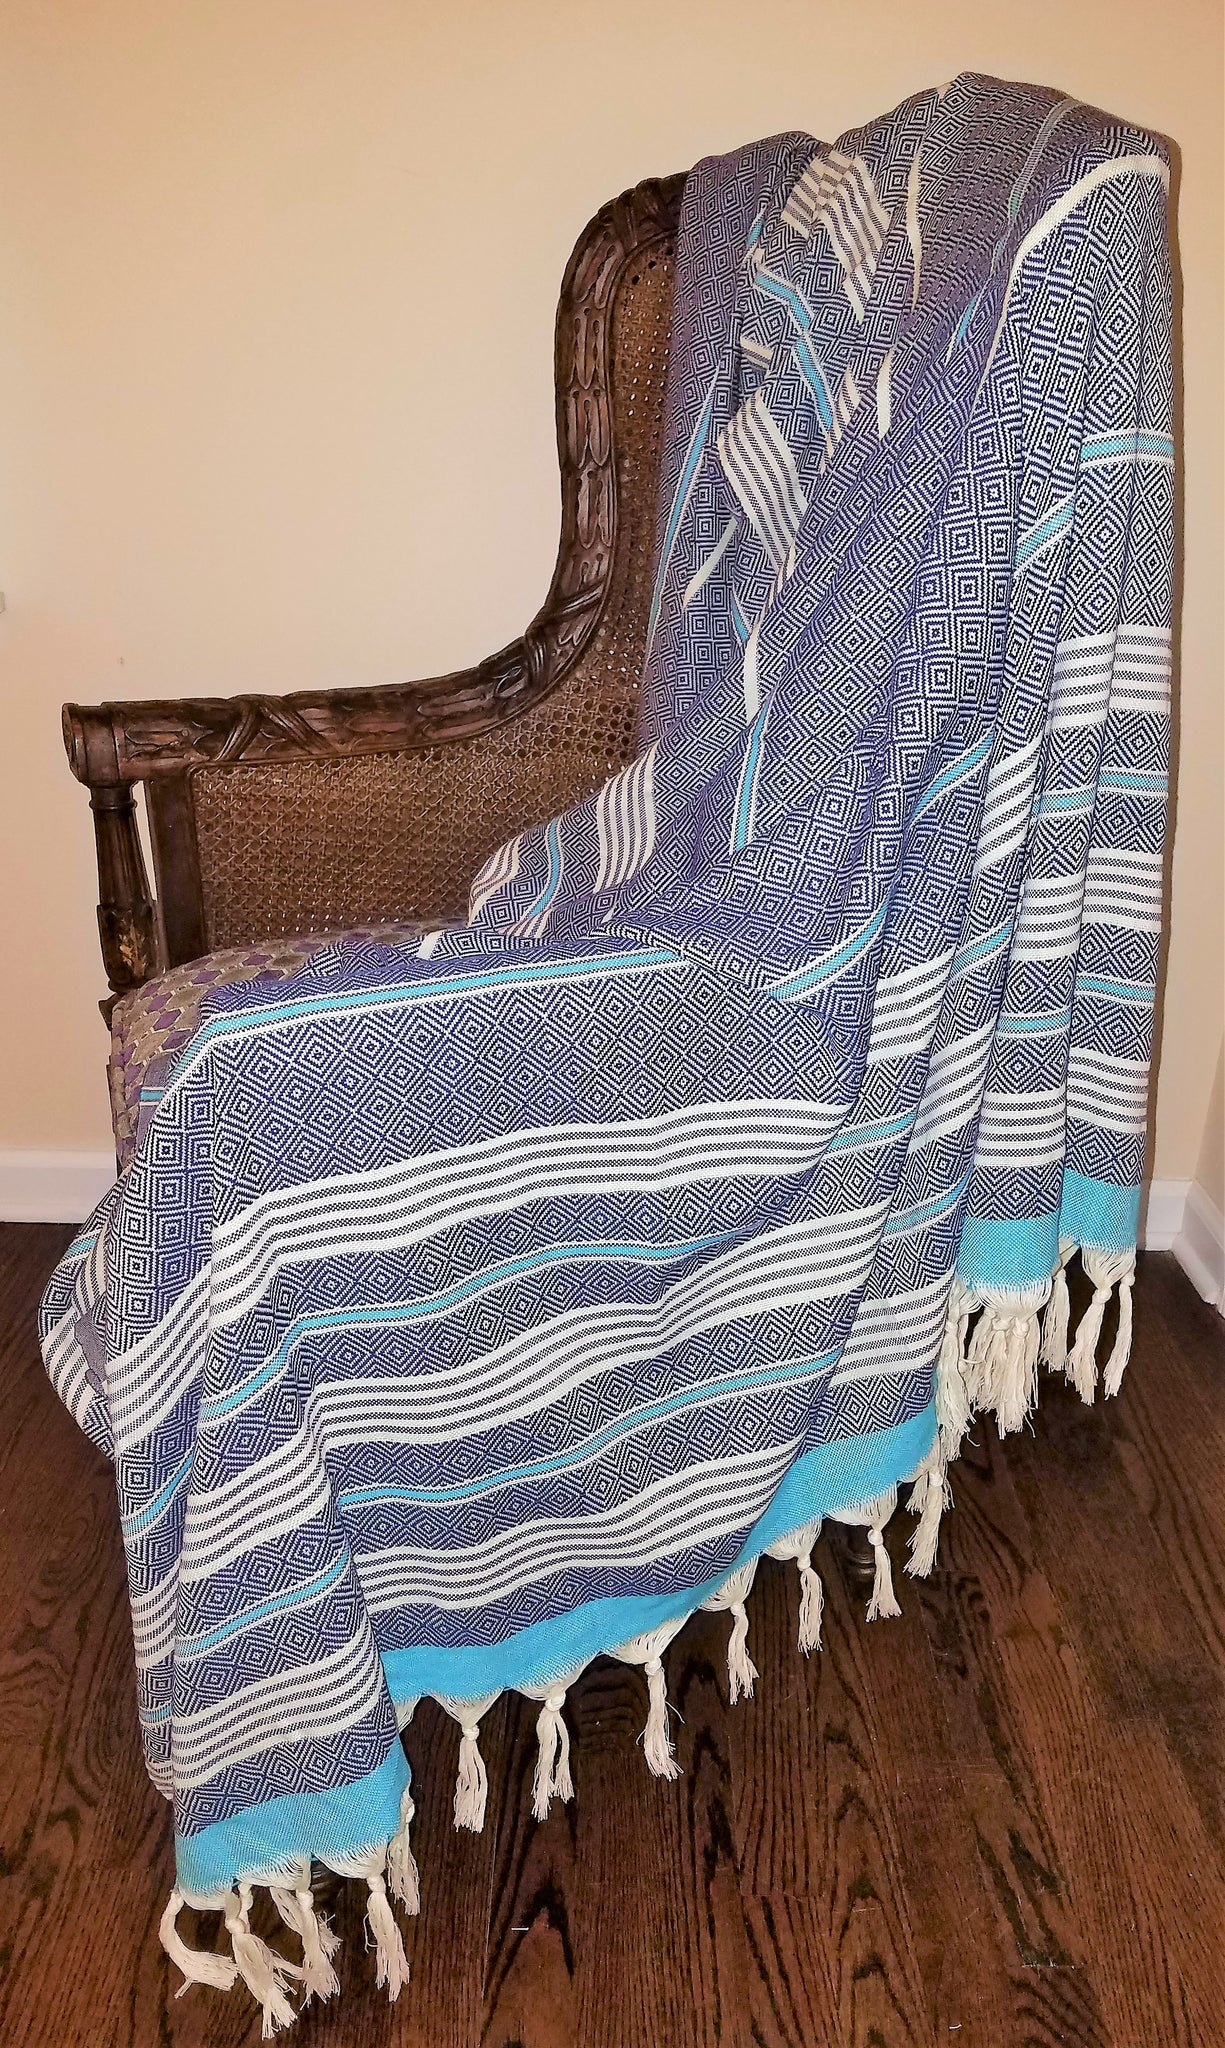 Ozgur Extra Large Peshtemal Diamond Blanket - Deck Towel